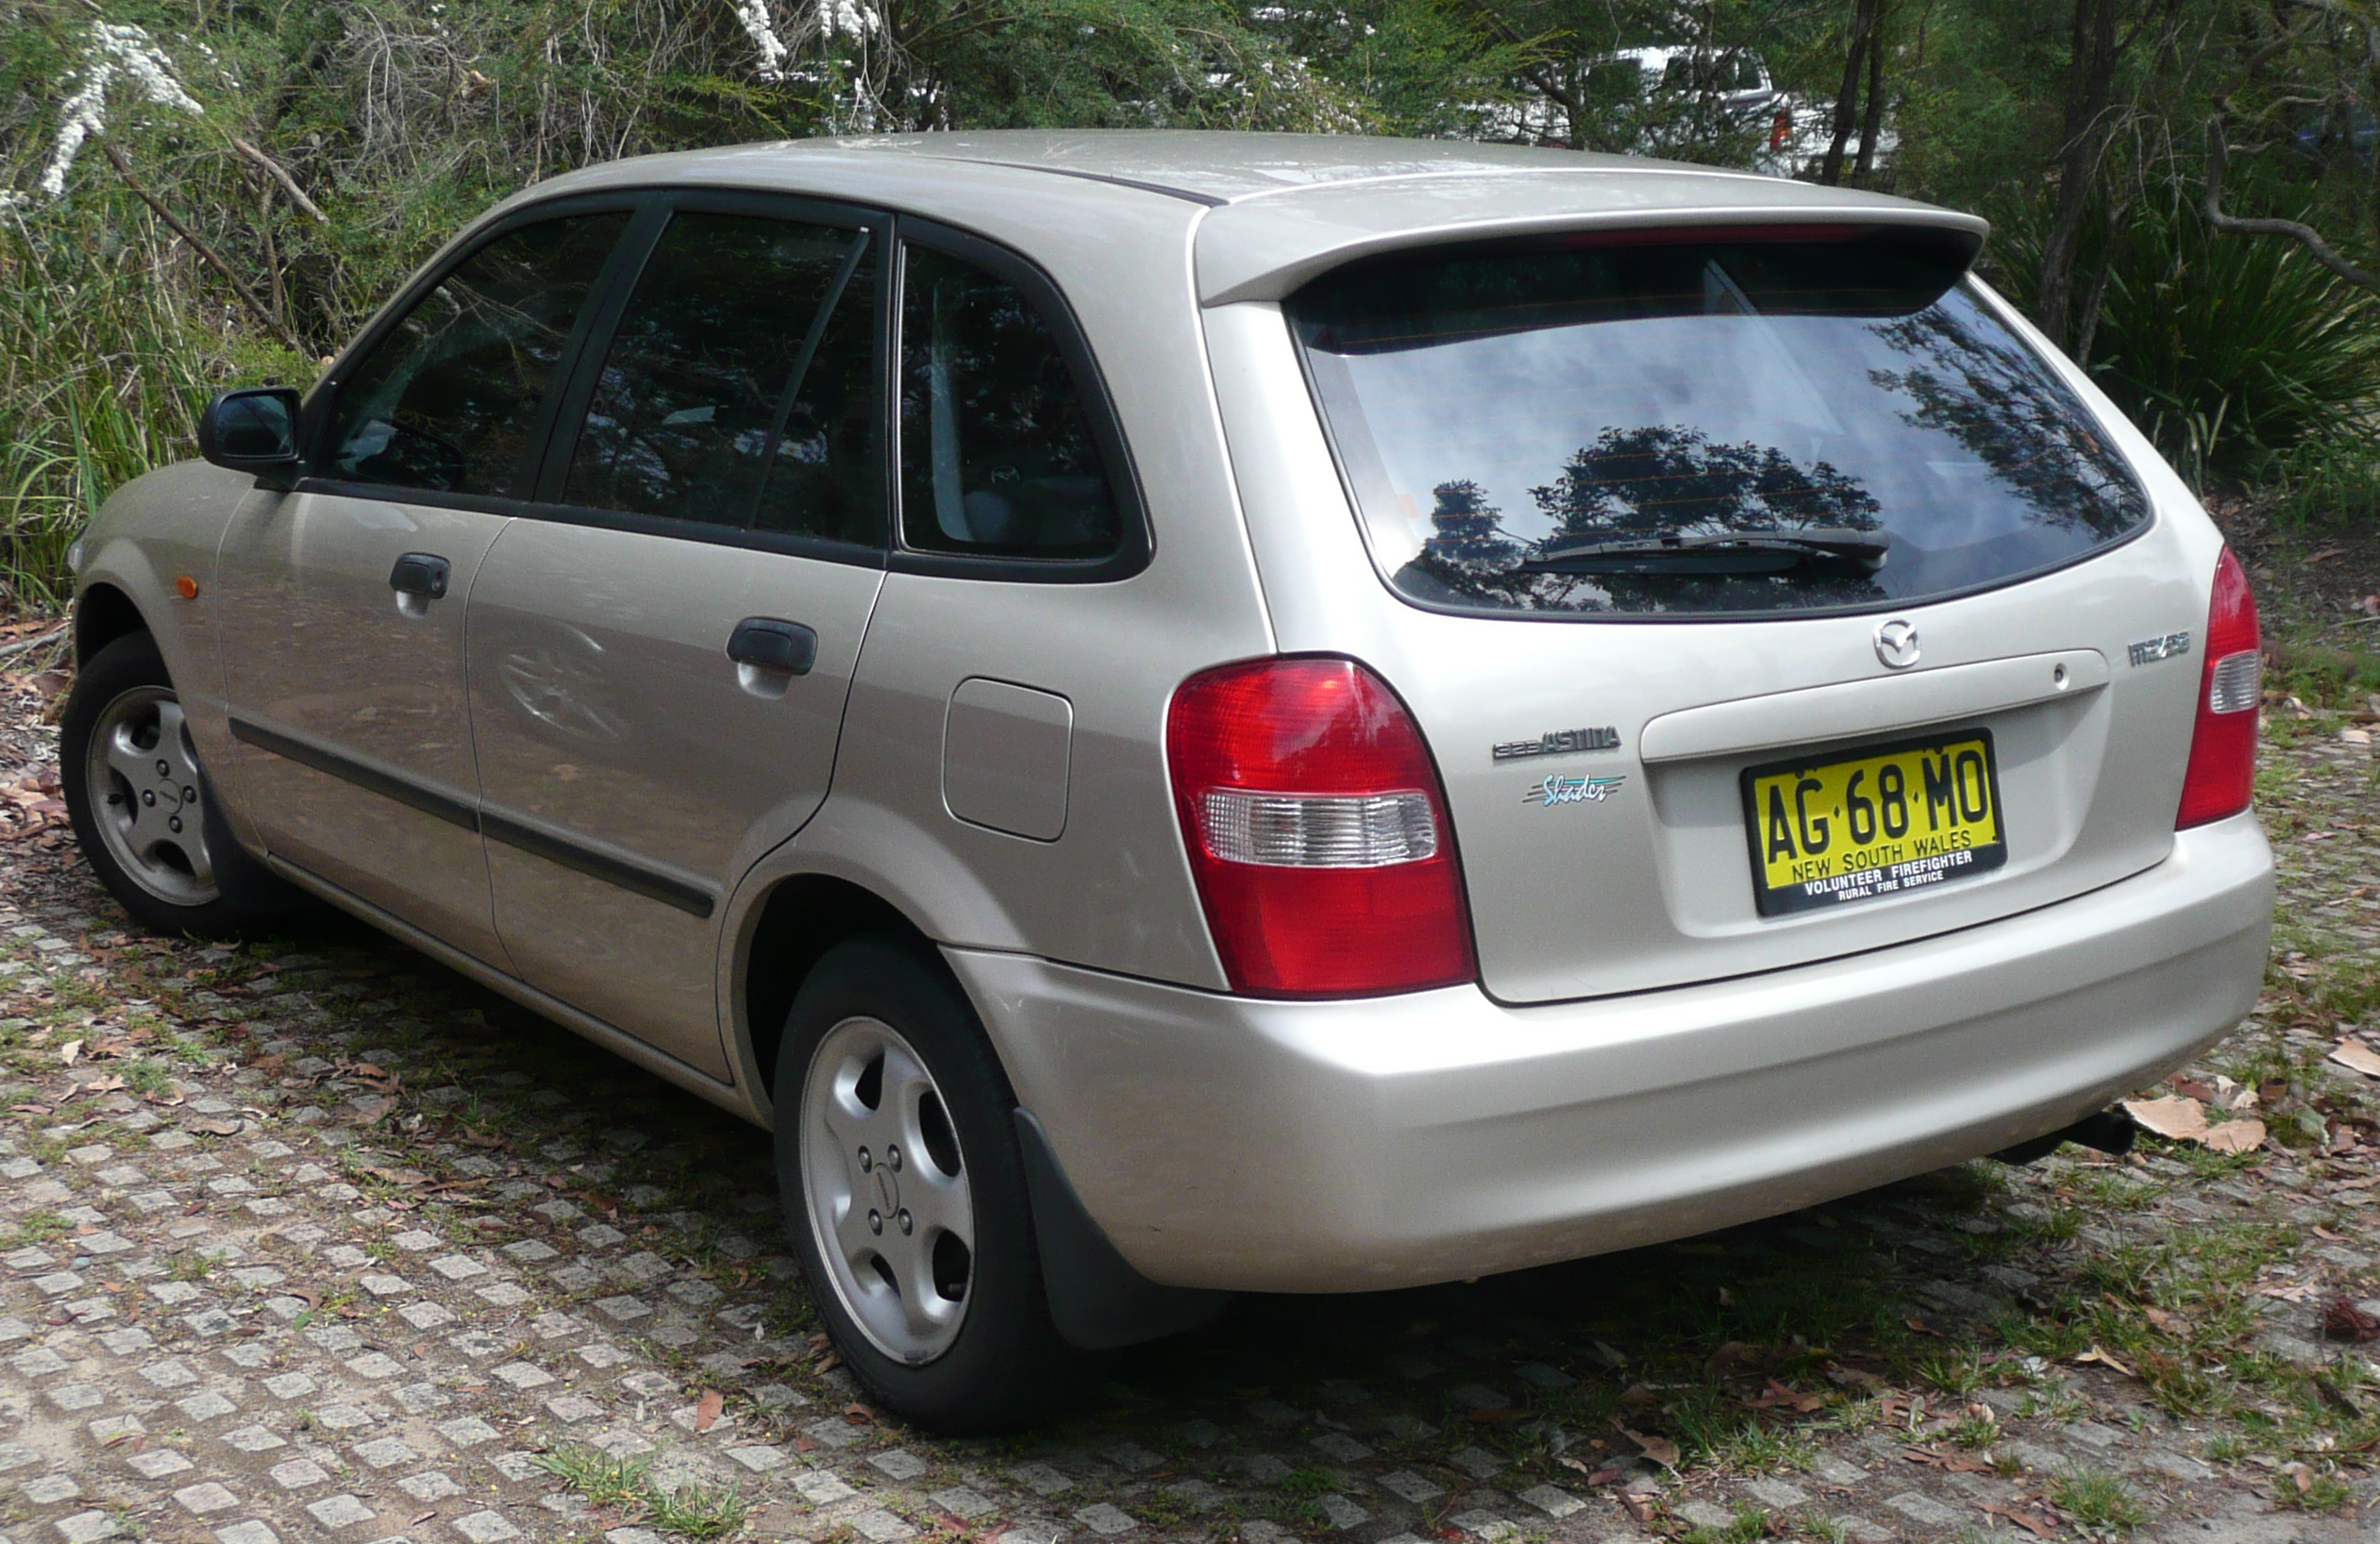 File:1999-2000 Mazda 323 (BJ) Shades Astina 5-door hatchback